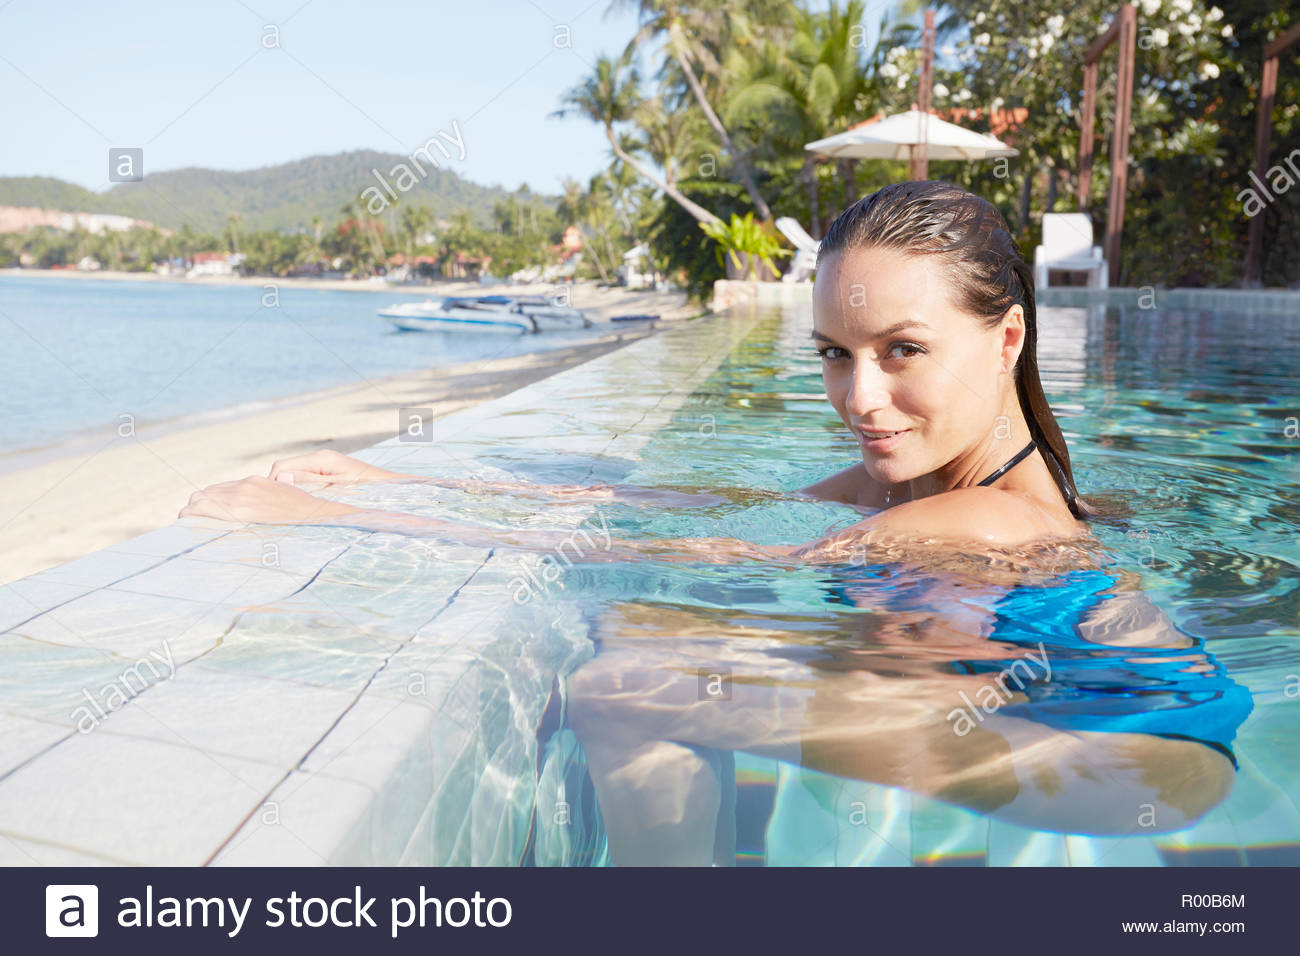 Young woman in swimming pool by beach Stock Photo